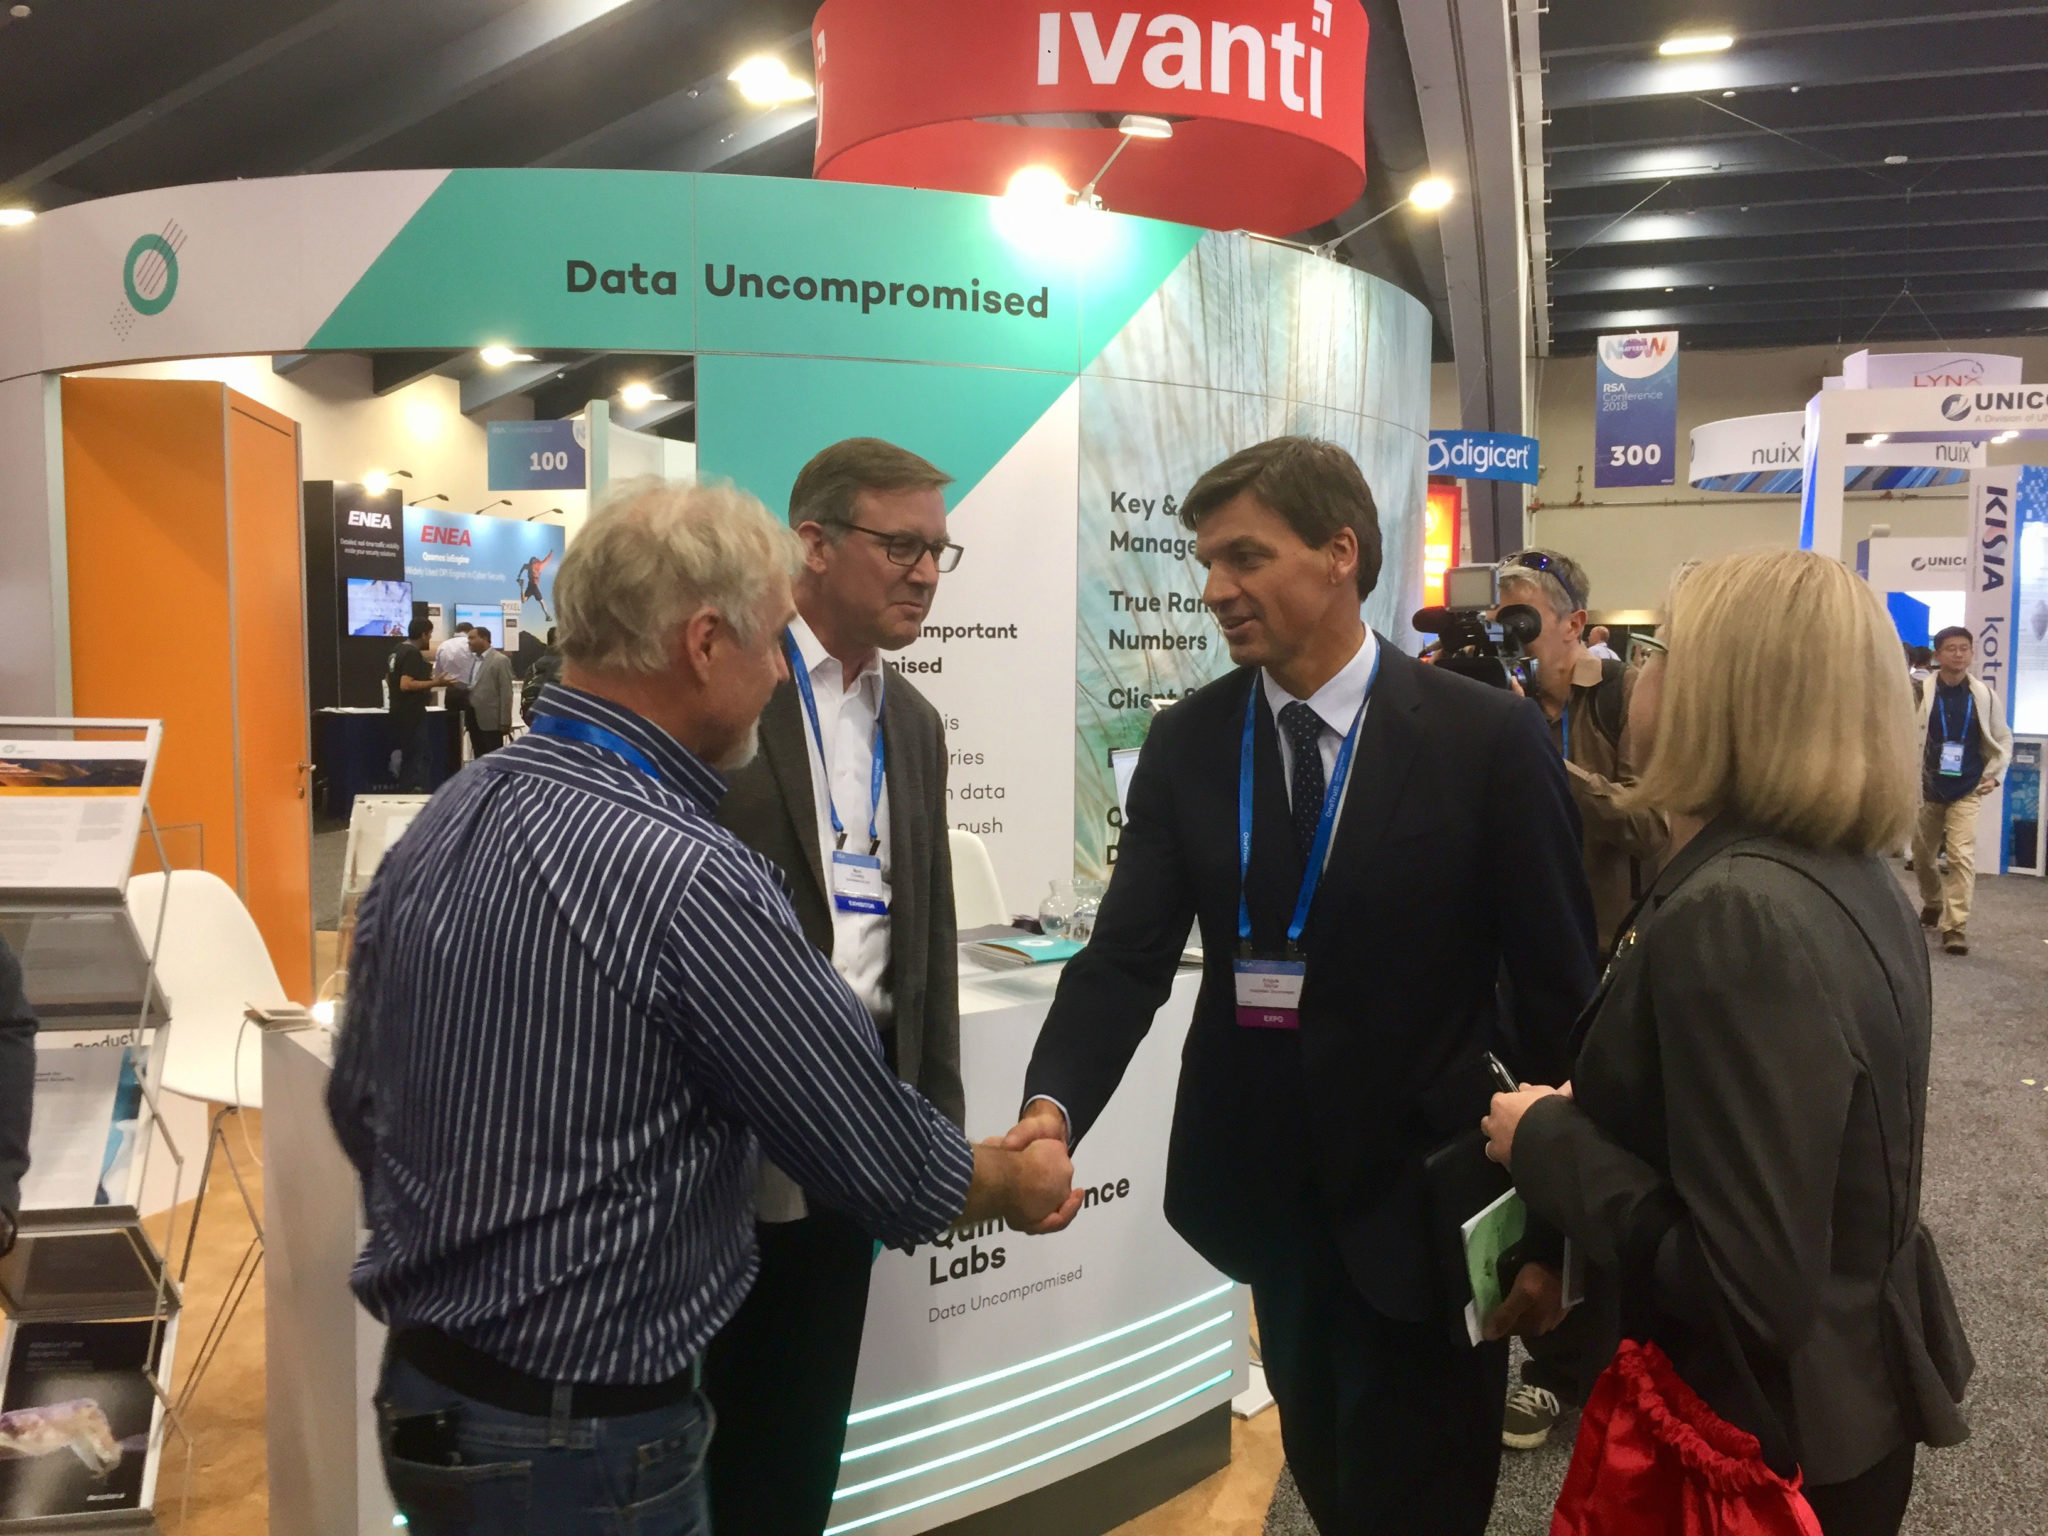 Australia's Minister For Law Enforcement And Cyber Security, Angus Taylor MP, Visited Our Booth At RSA.